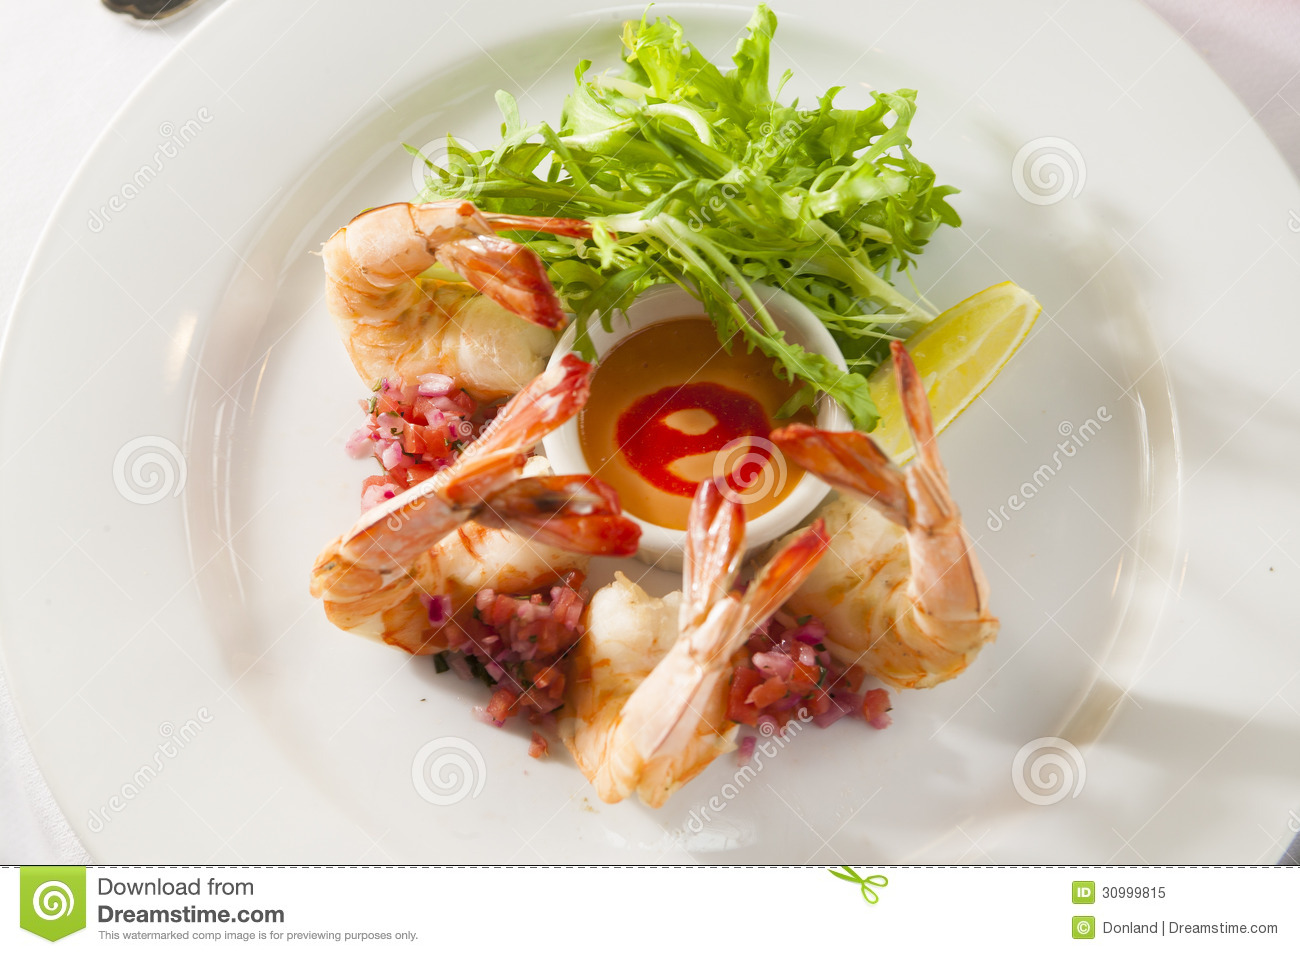 Fancy Shrimp Cocktail Appetizer Royalty Free Stock Photo  : fancy shrimp cocktail appetizer restaurant setting 30999815 from www.dreamstime.com size 1300 x 955 jpeg 278kB